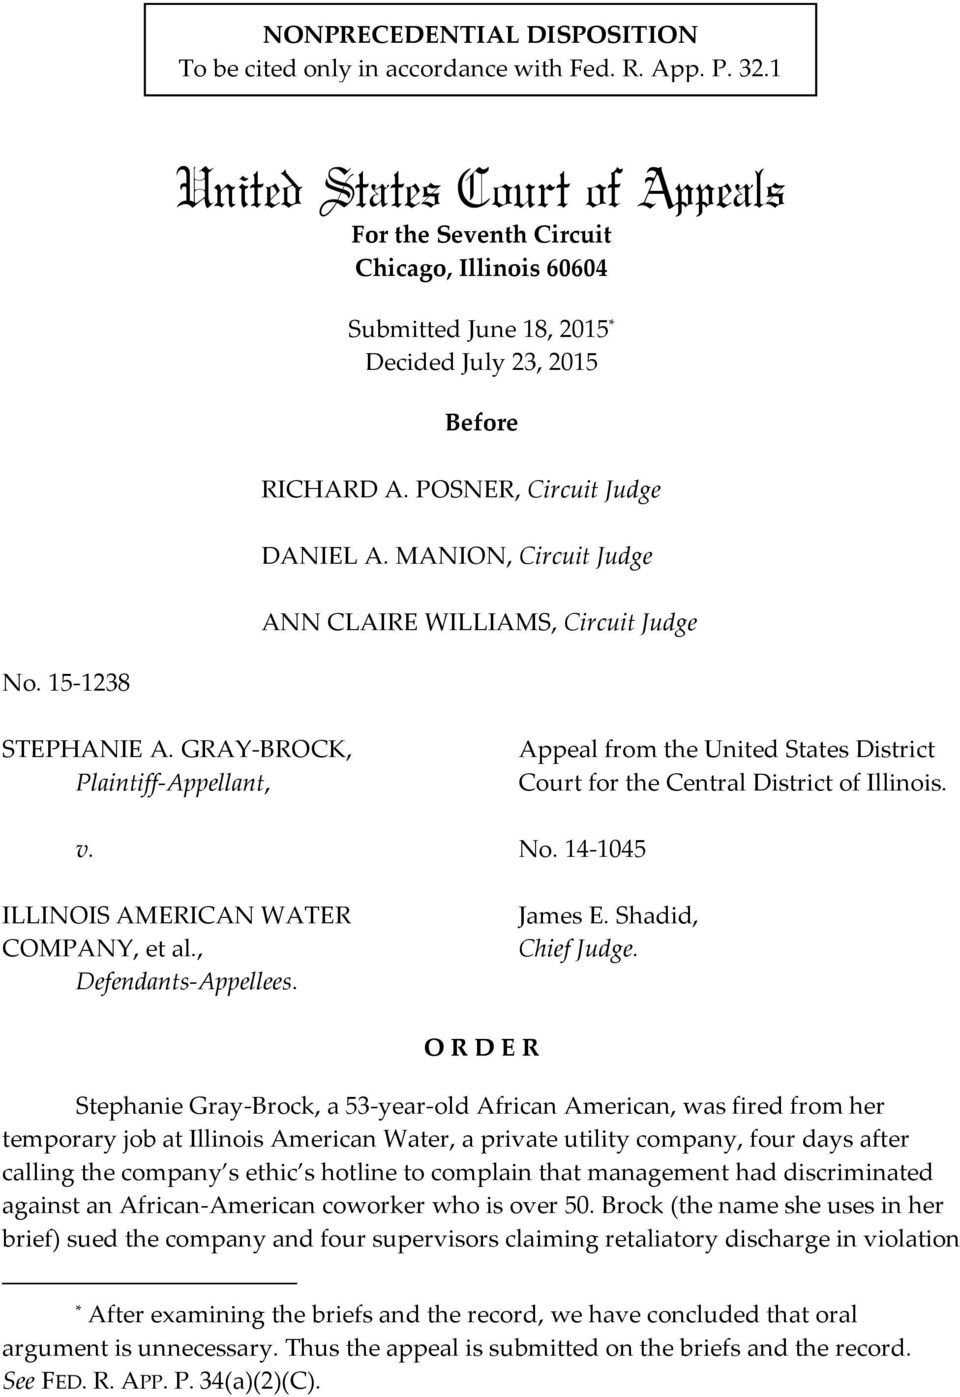 MANION, Circuit Judge ANN CLAIRE WILLIAMS, Circuit Judge No. 15-1238 STEPHANIE A. GRAY-BROCK, Plaintiff-Appellant, v. ILLINOIS AMERICAN WATER COMPANY, et al., Defendants-Appellees.